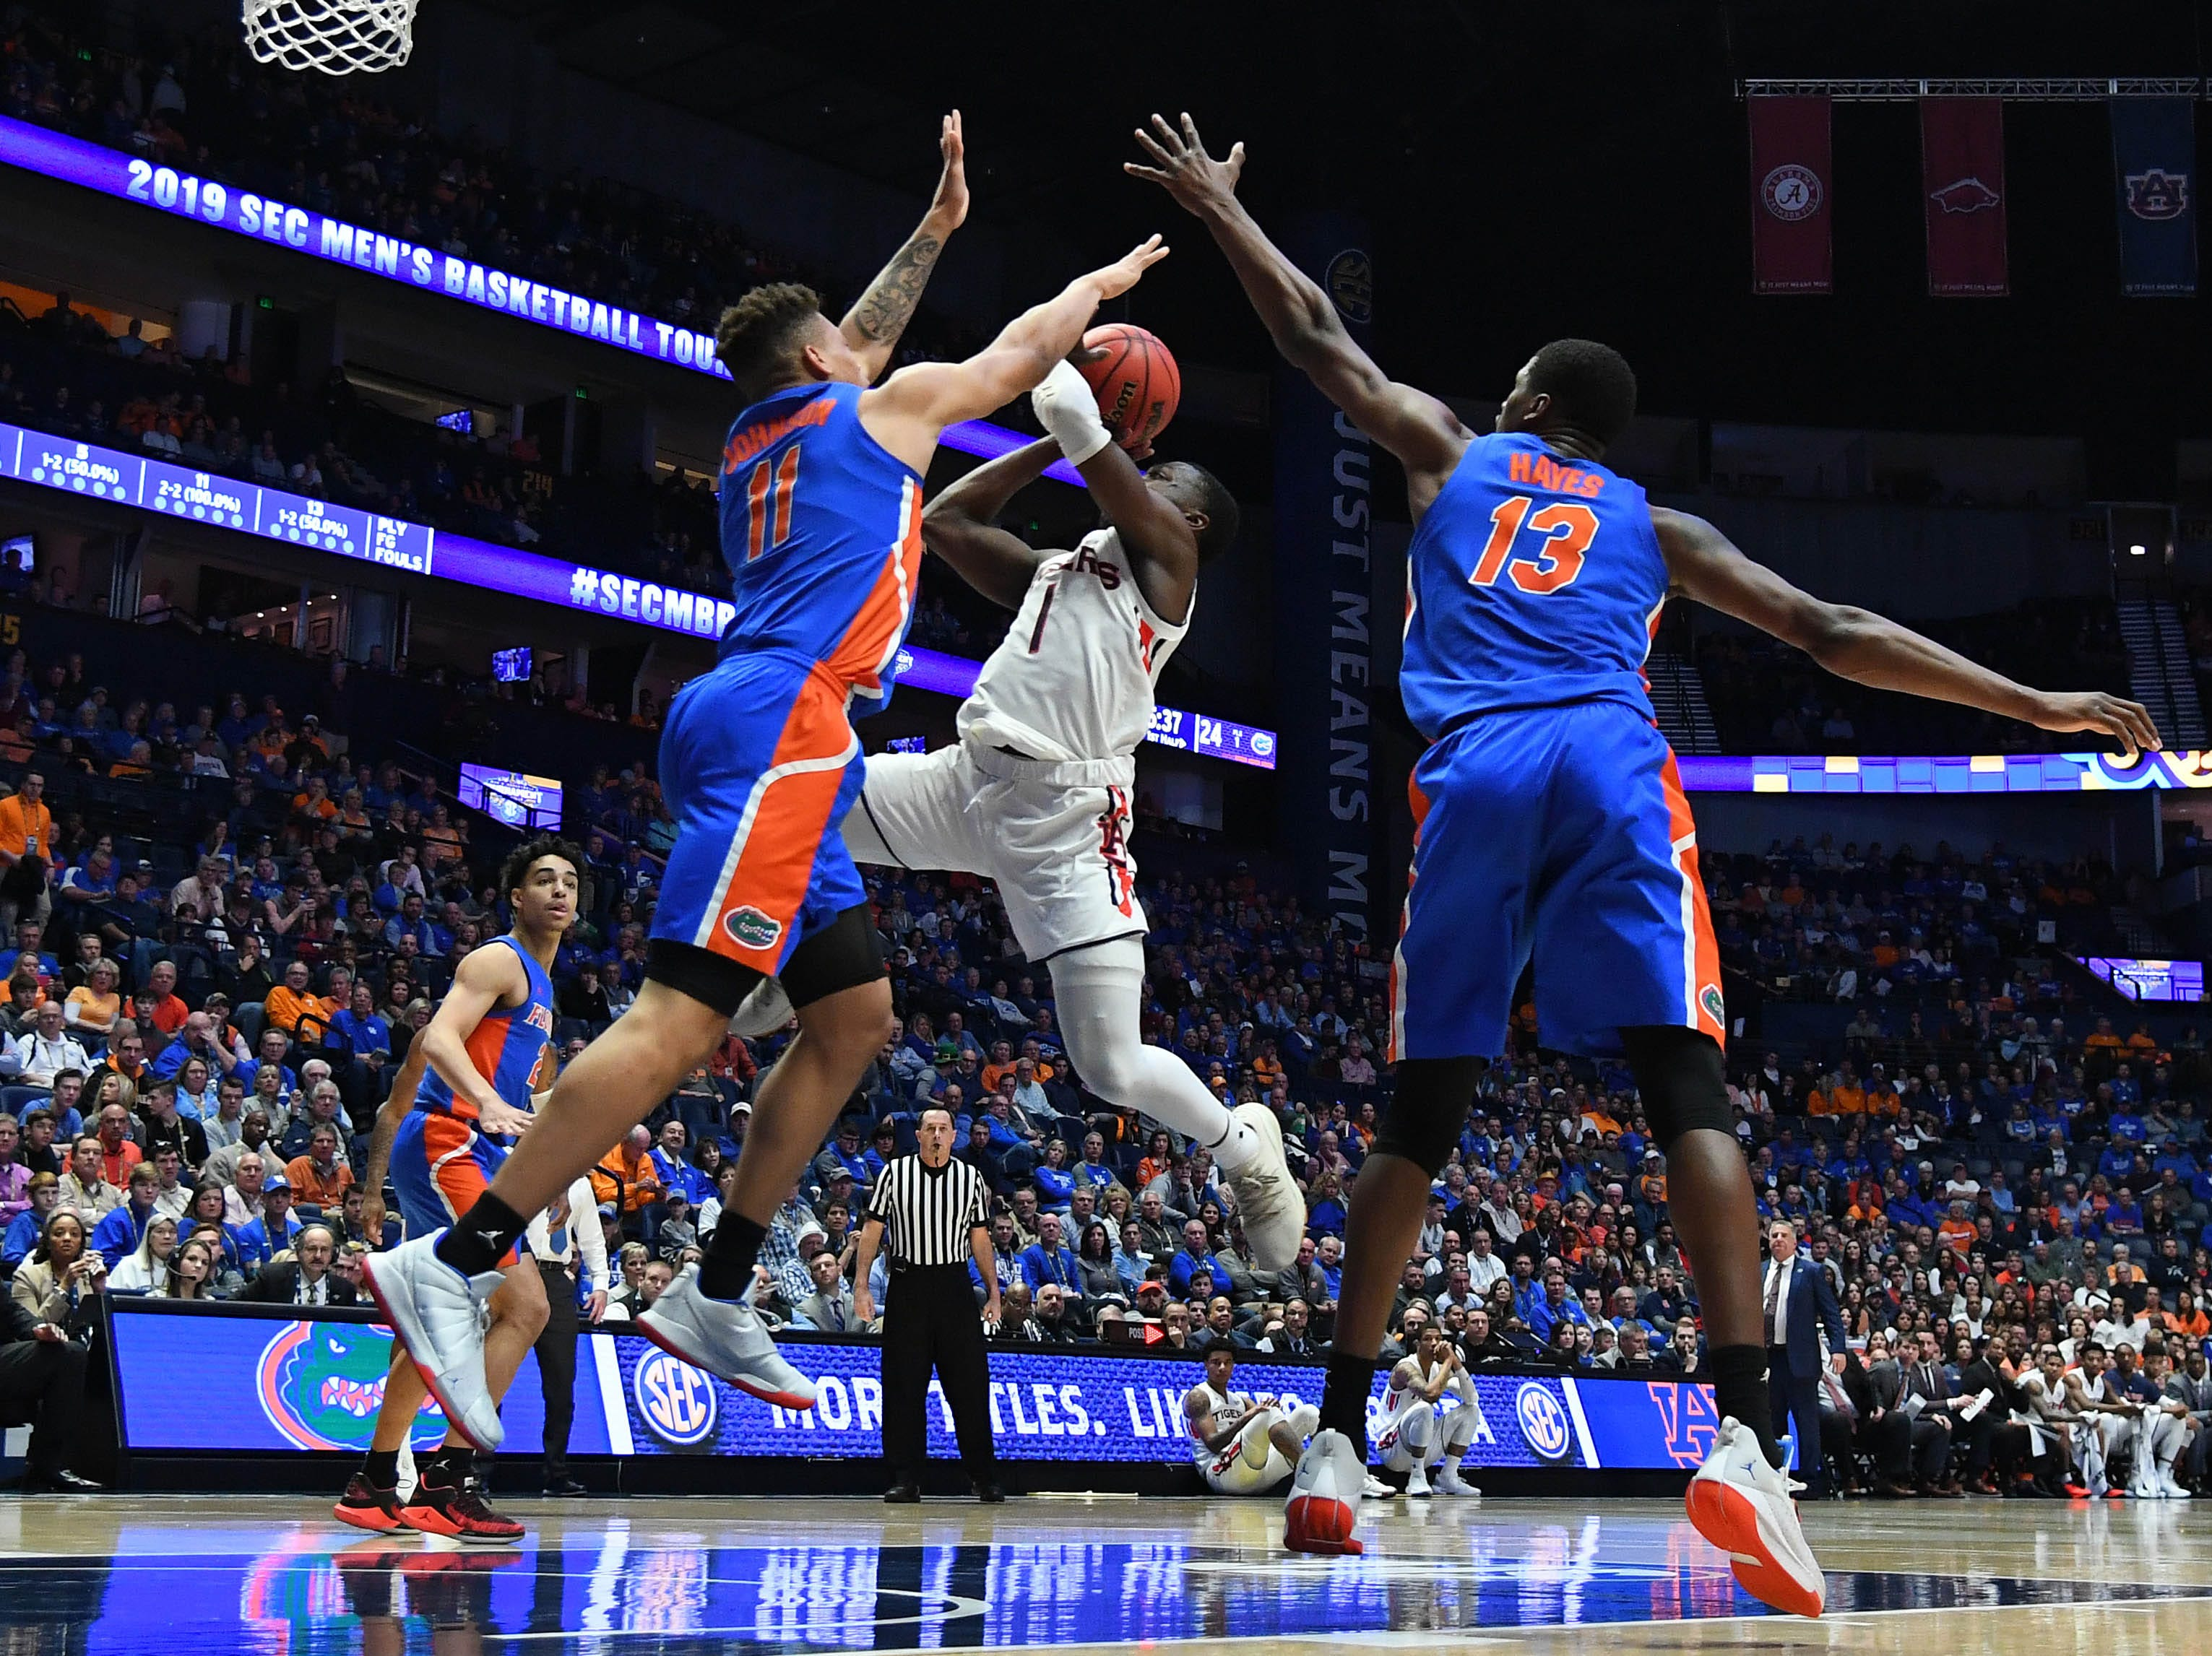 Mar 16, 2019; Nashville, TN, USA; Auburn Tigers guard Jared Harper (1) attempts a shot in the lane against Florida Gators forward Keyontae Johnson (11) and Florida Gators center Kevarrius Hayes (13) during the first half of the SEC conference tournament at Bridgestone Arena. Mandatory Credit: Christopher Hanewinckel-USA TODAY Sports